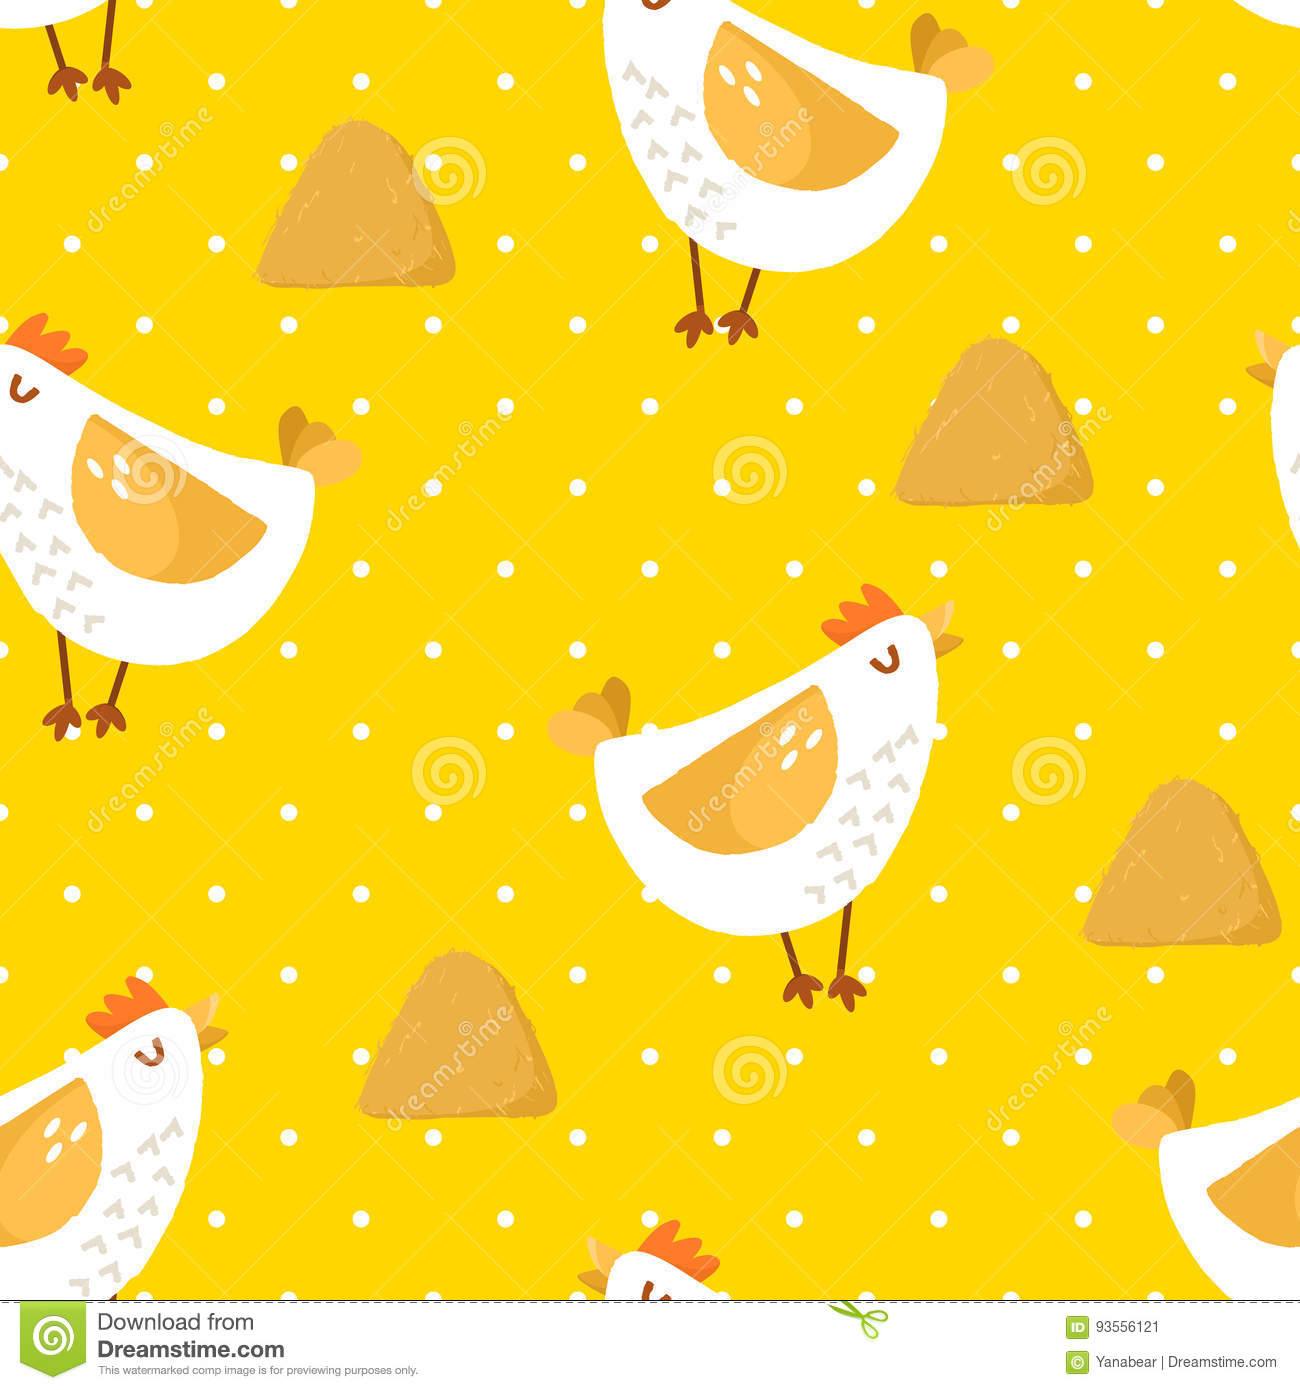 Seamless Pattern In Polka Dot With Cartoon Chicken And